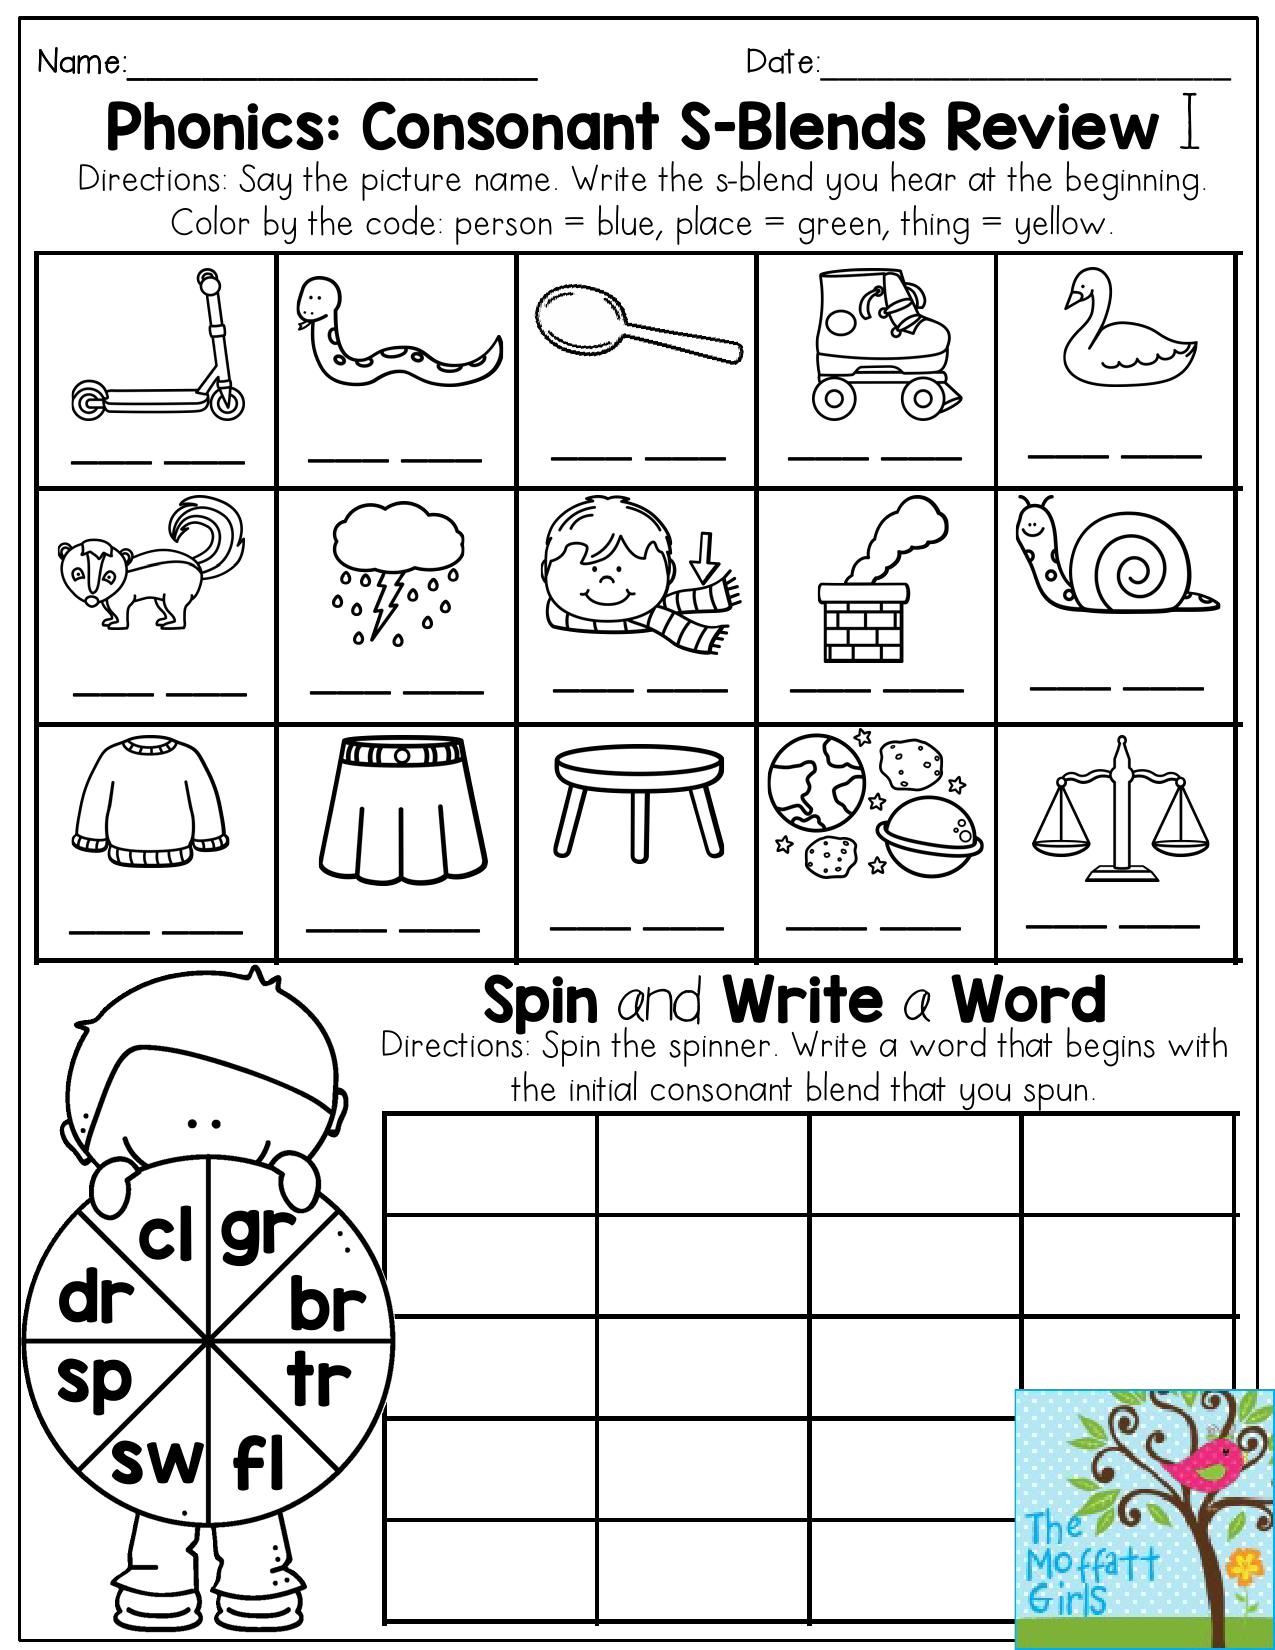 S Blend Worksheets First Grade Phonics Consonant S Blends Review Write the S Blend that